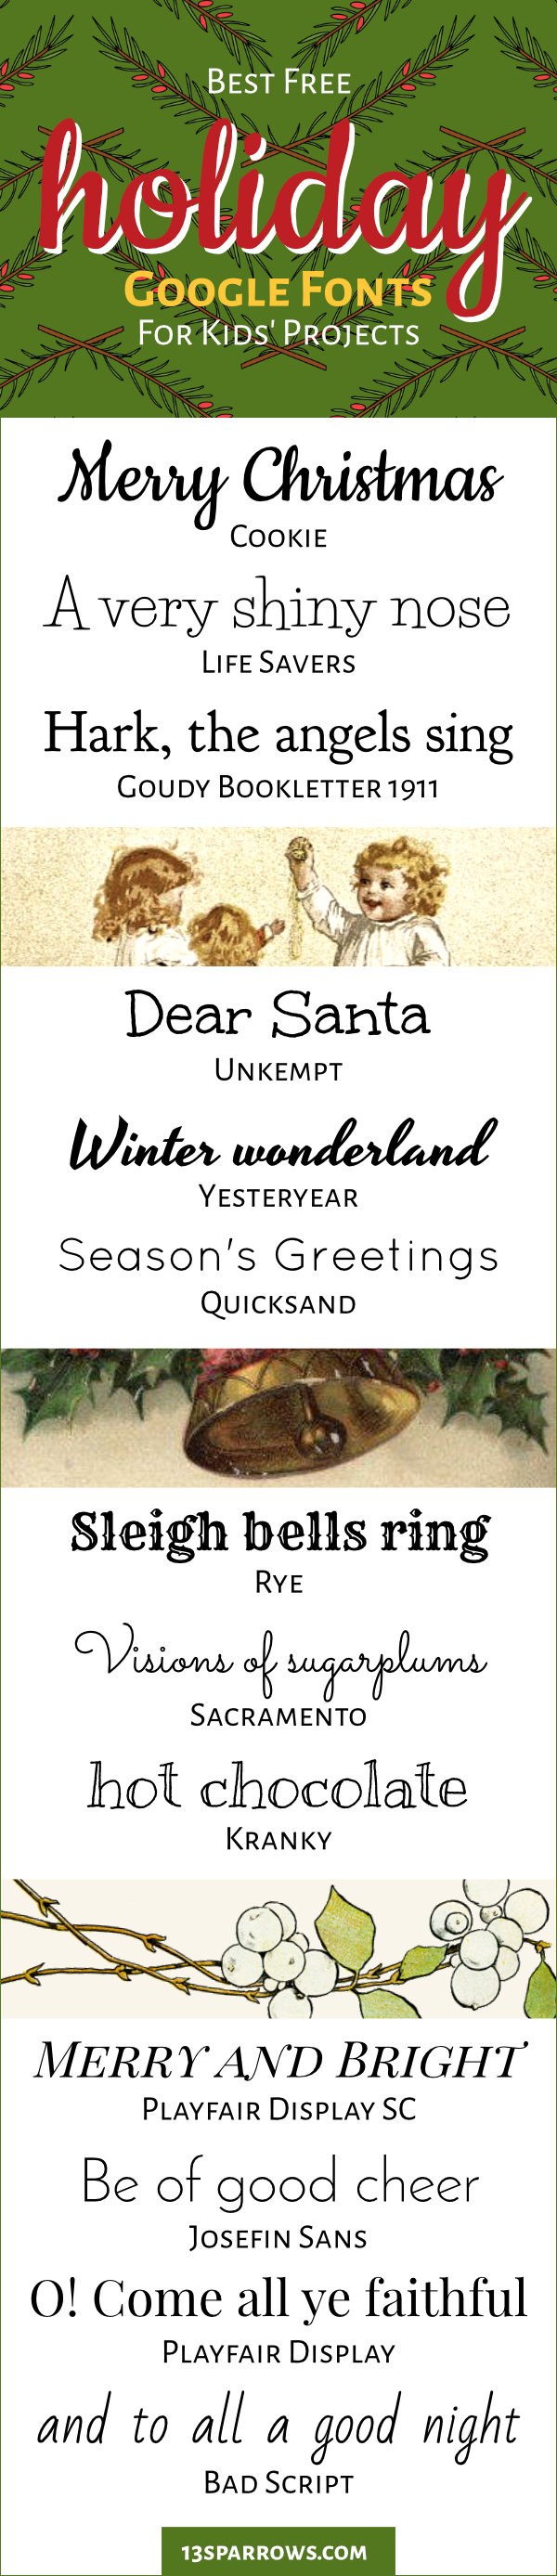 Use these fun, free, handwritten fonts for Christmas and winter holiday projects for kids. Download them on fonts.google.com.